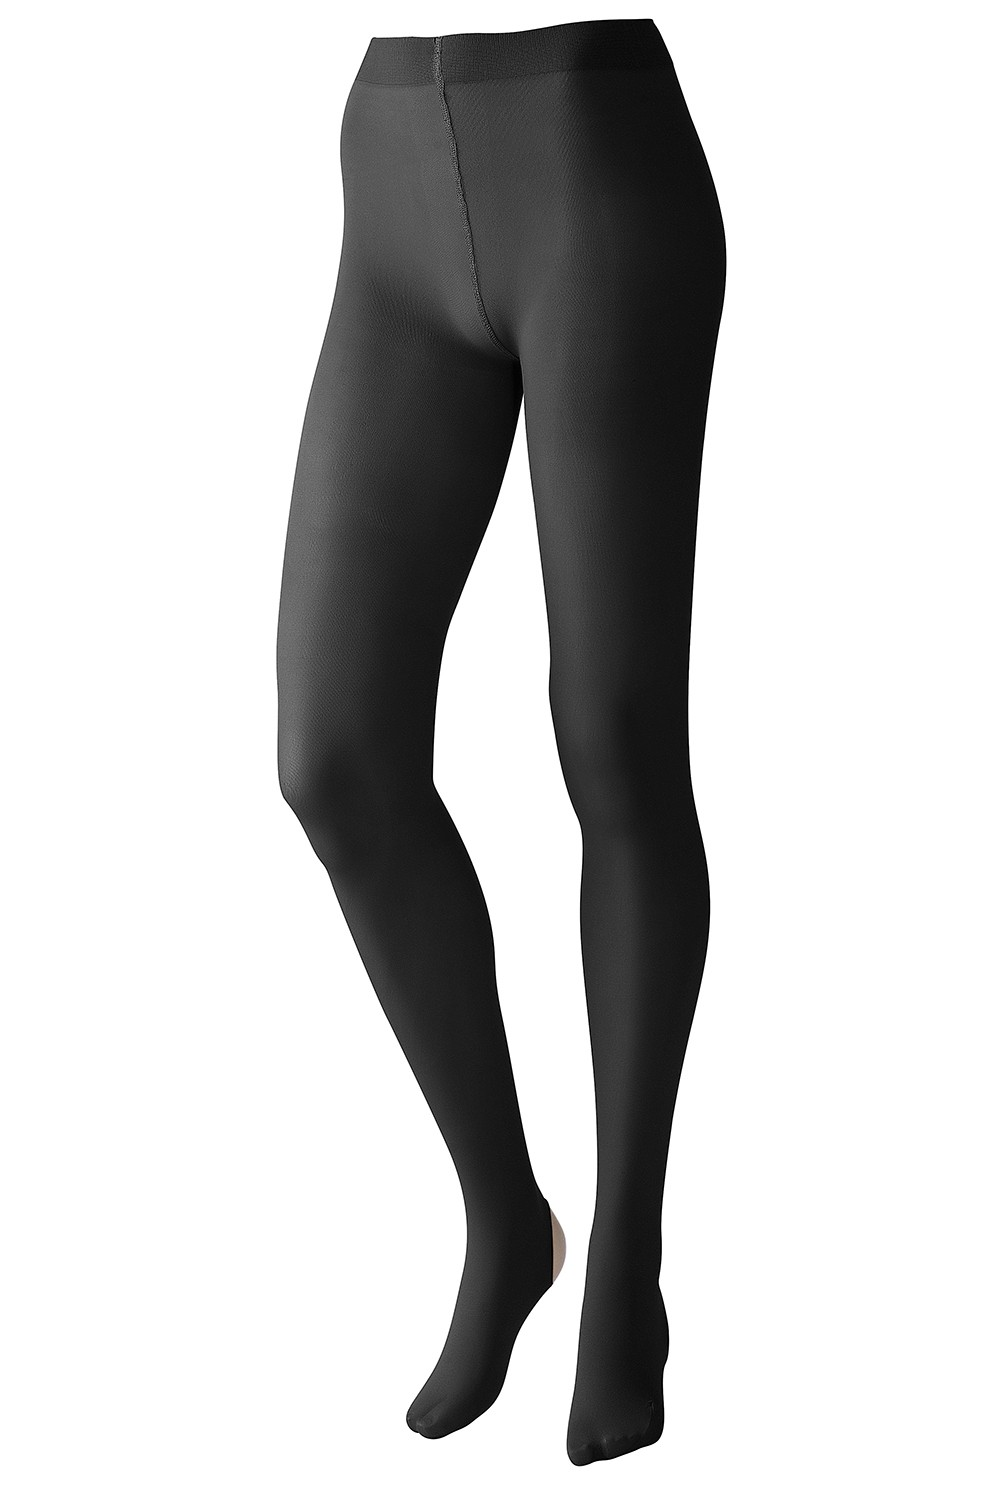 Convertible Microfibre Bloch Tight Women's Dance Tights